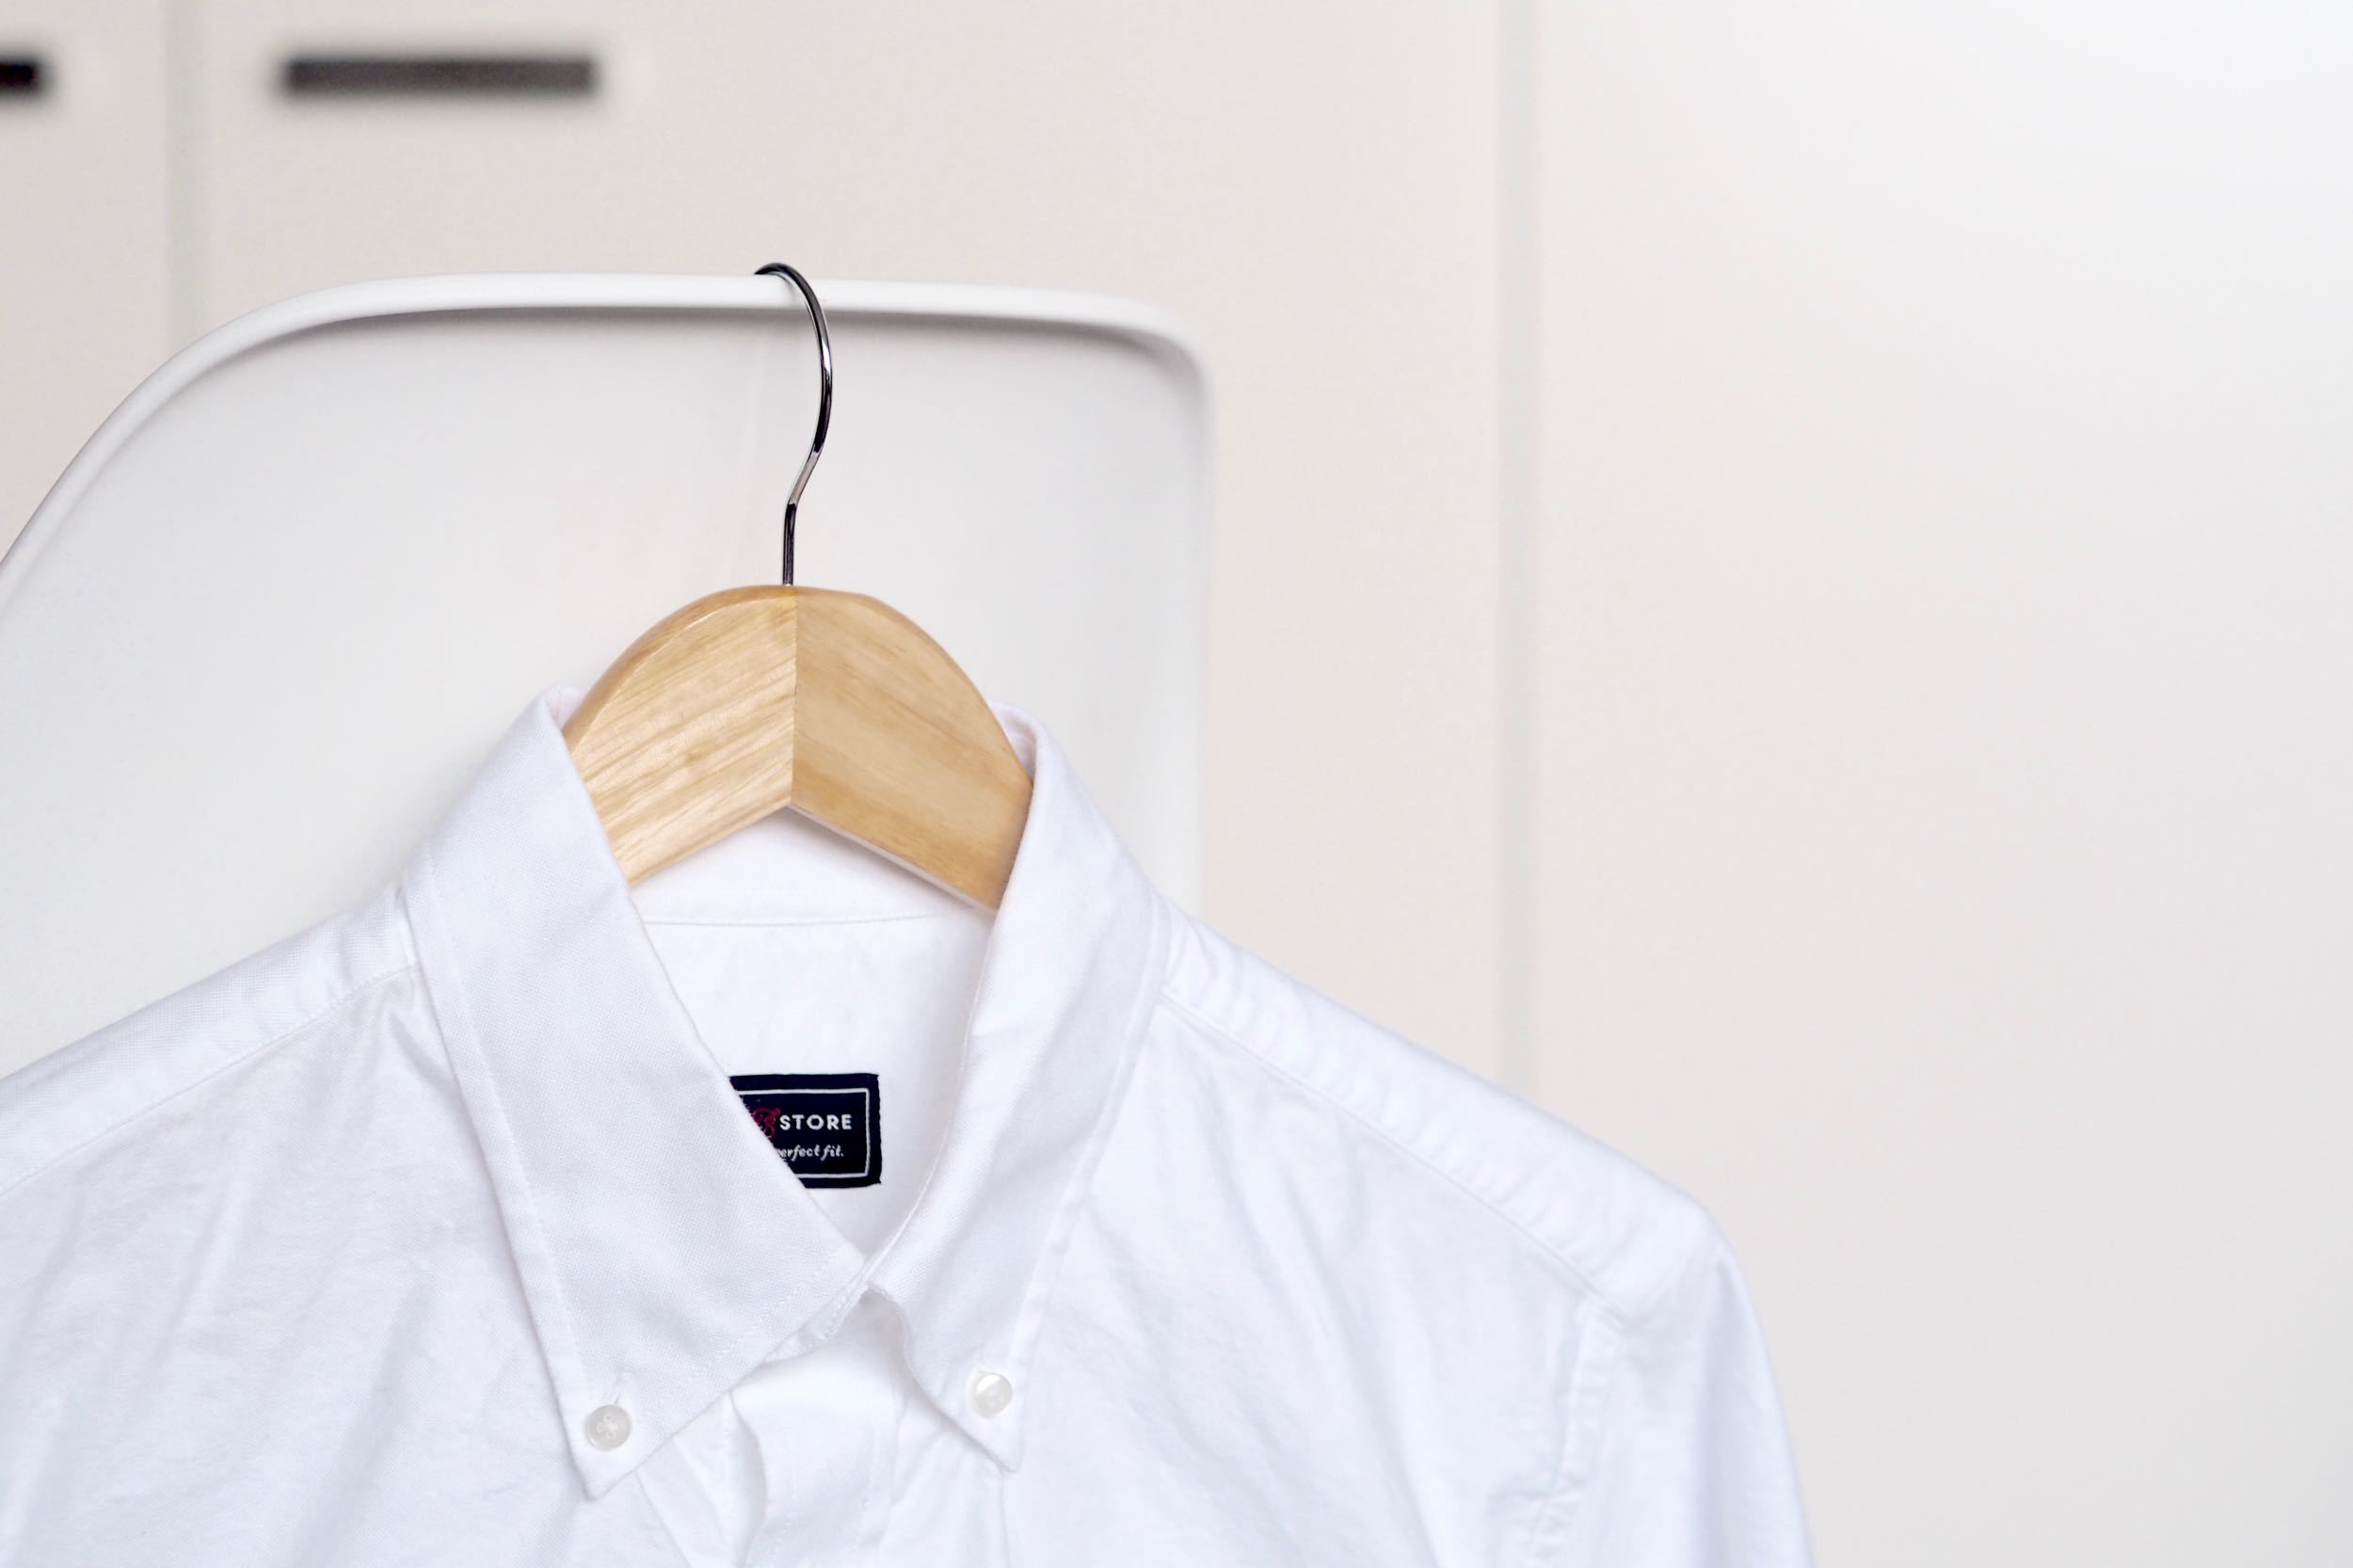 e5b1f2fc5729 Design Shirts Online   Tailor Store - Hey Gents